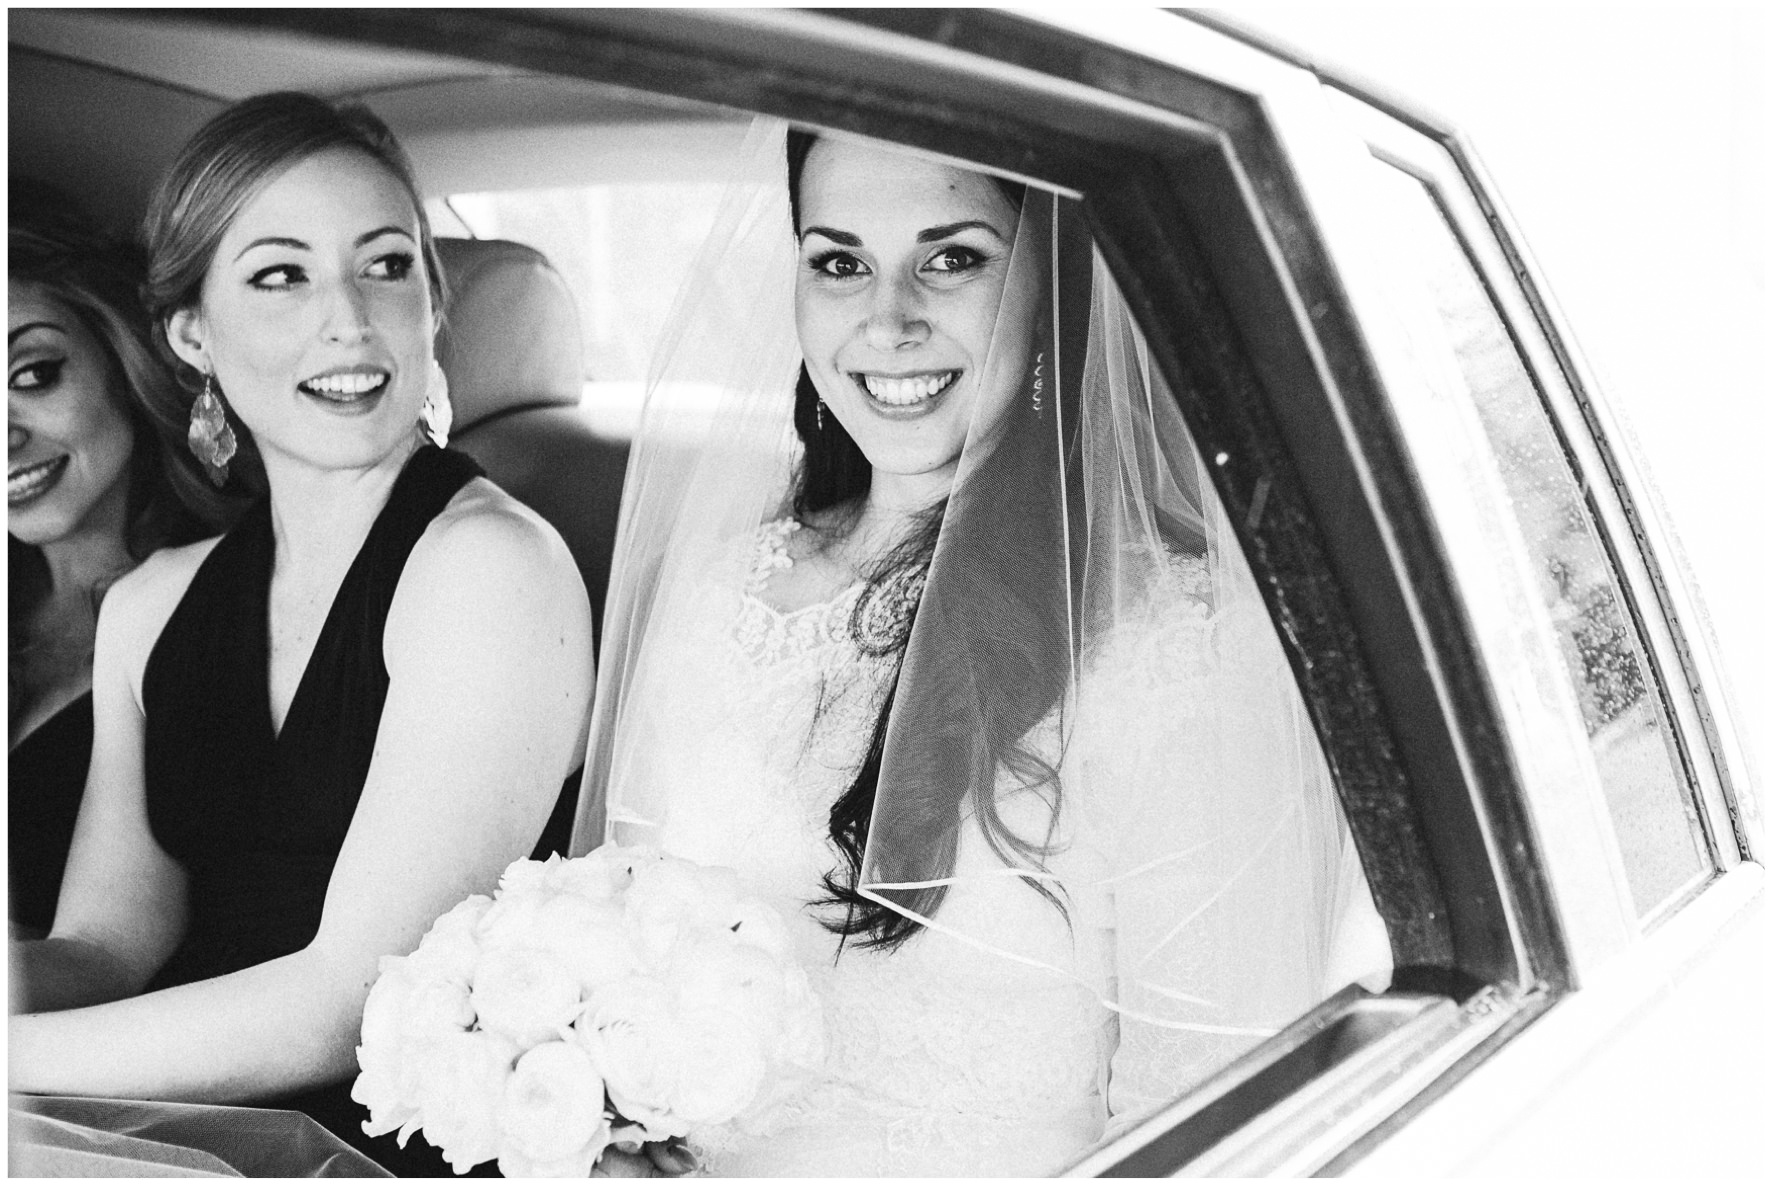 Lucy Davenport Photography, Katrina Otter Weddings, Chippenham Park, church wedding, bride, bridal car